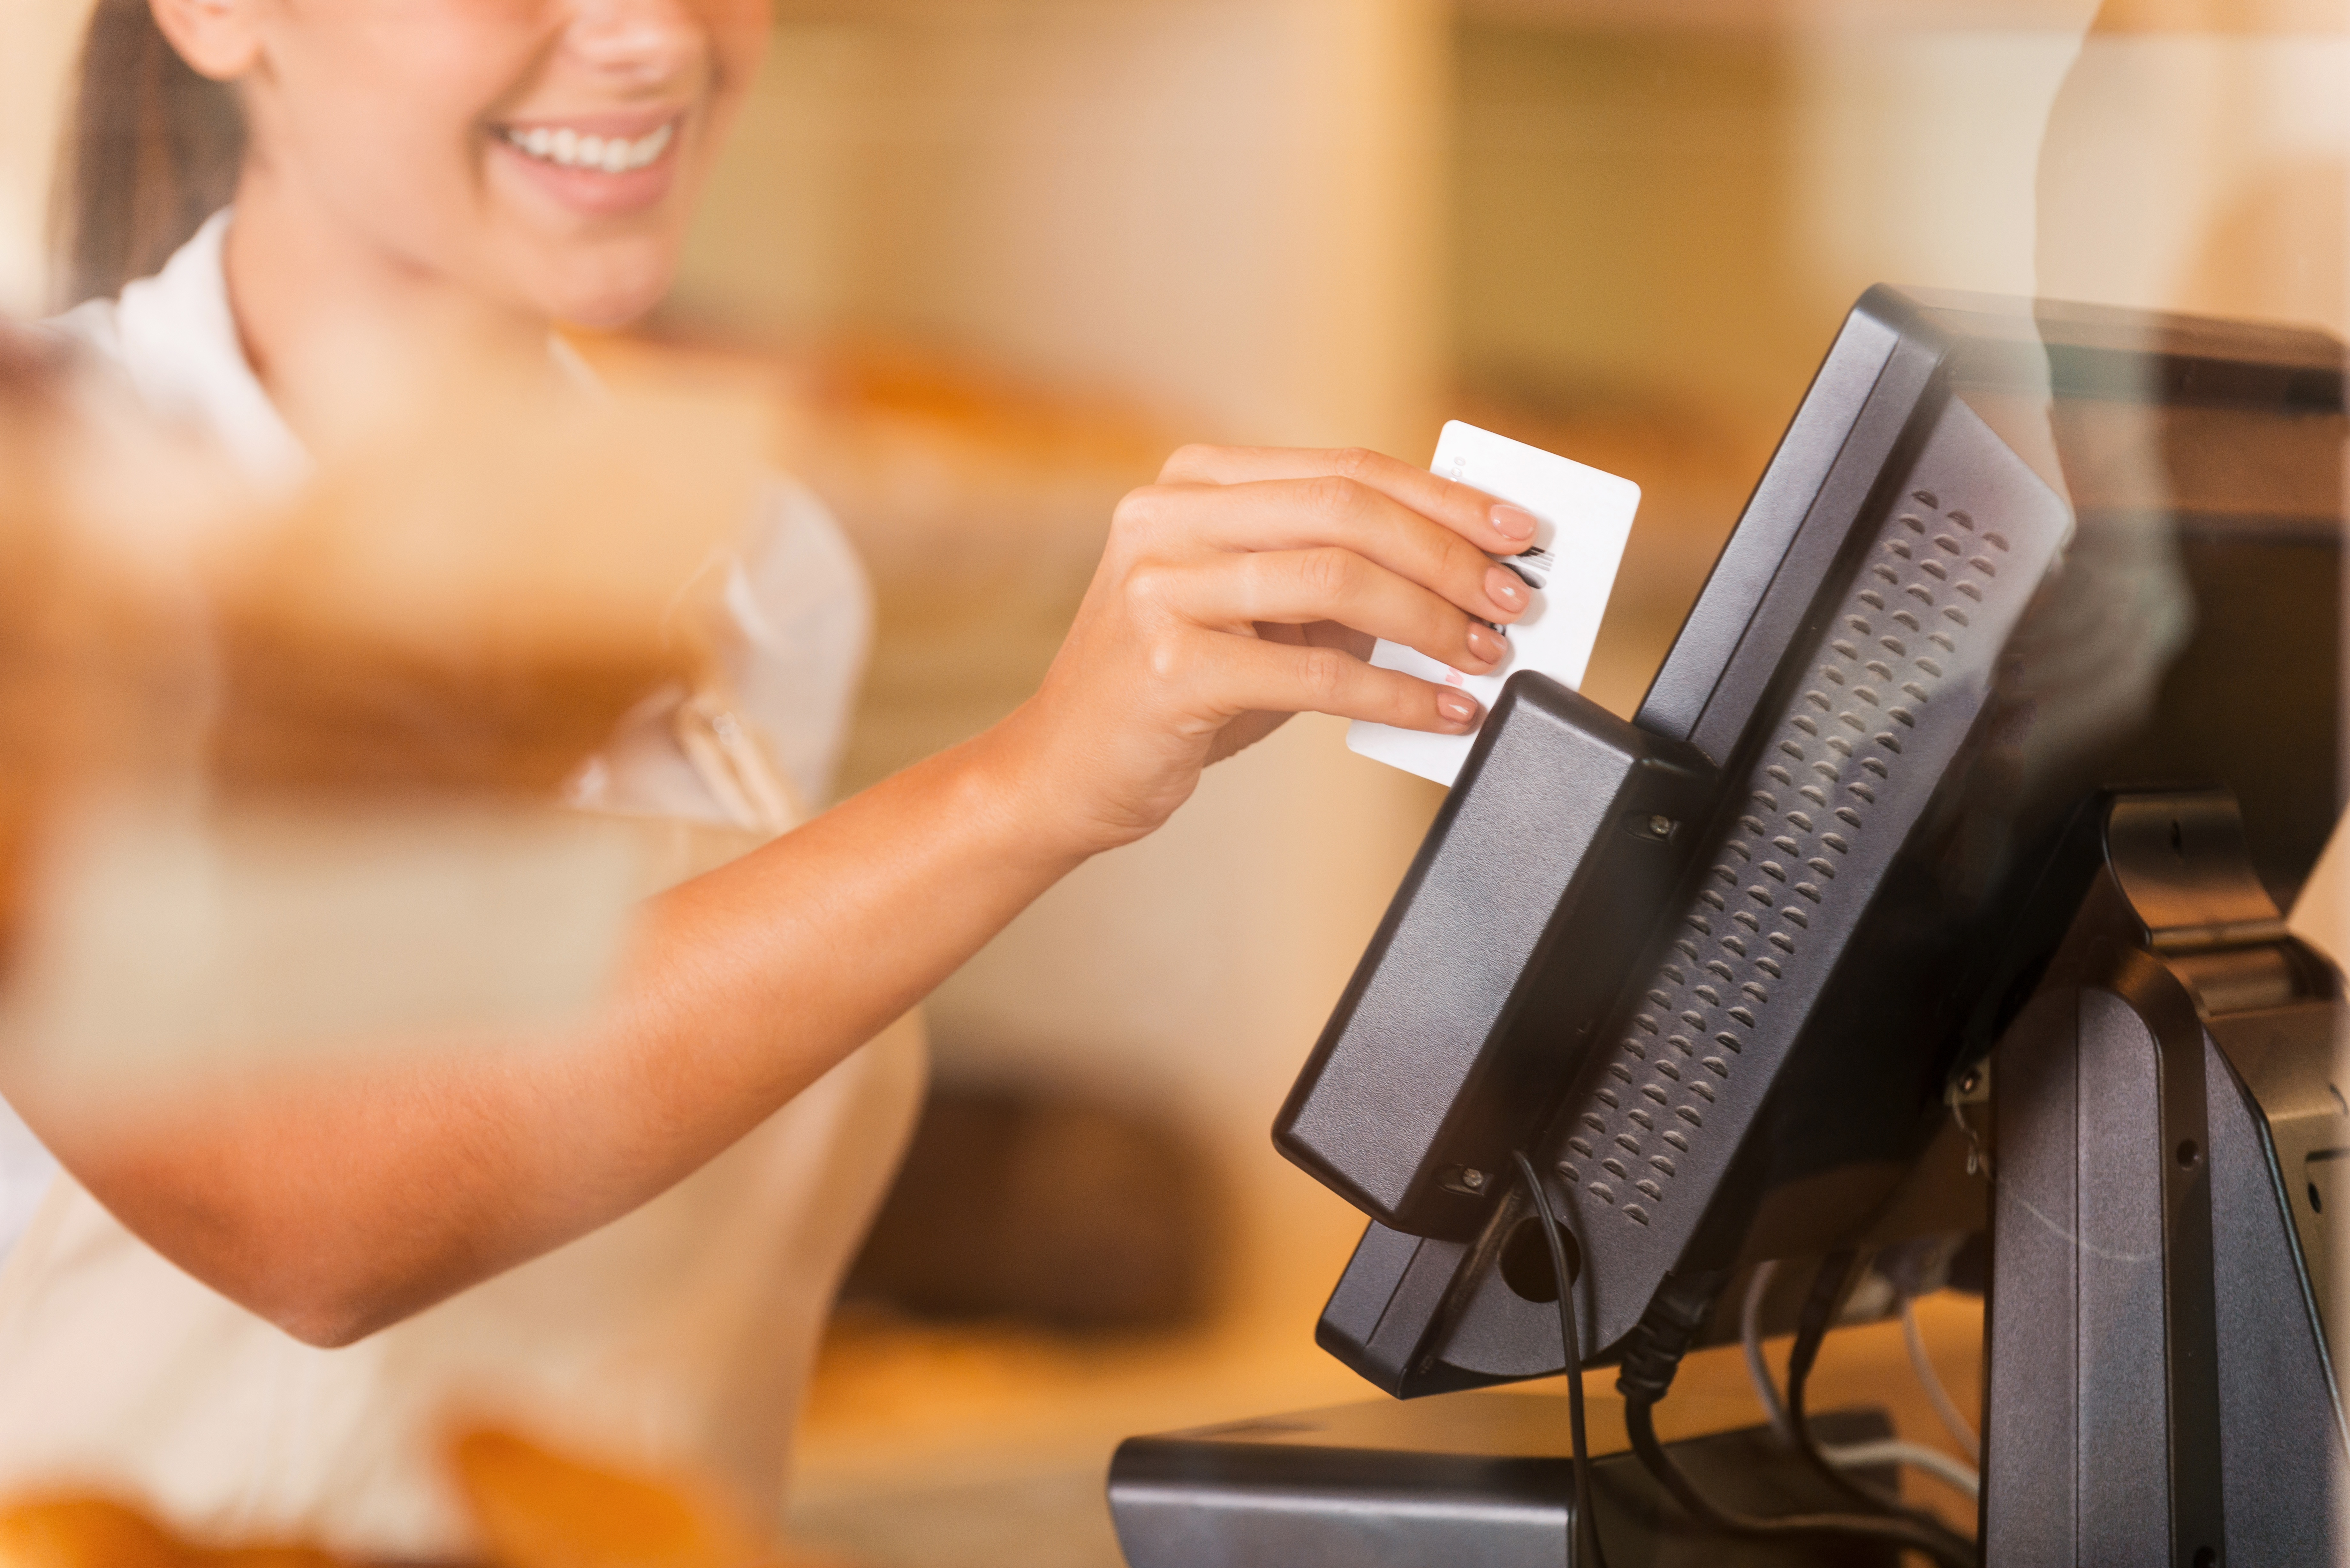 Swiping-Card-Cash-Register.jpg